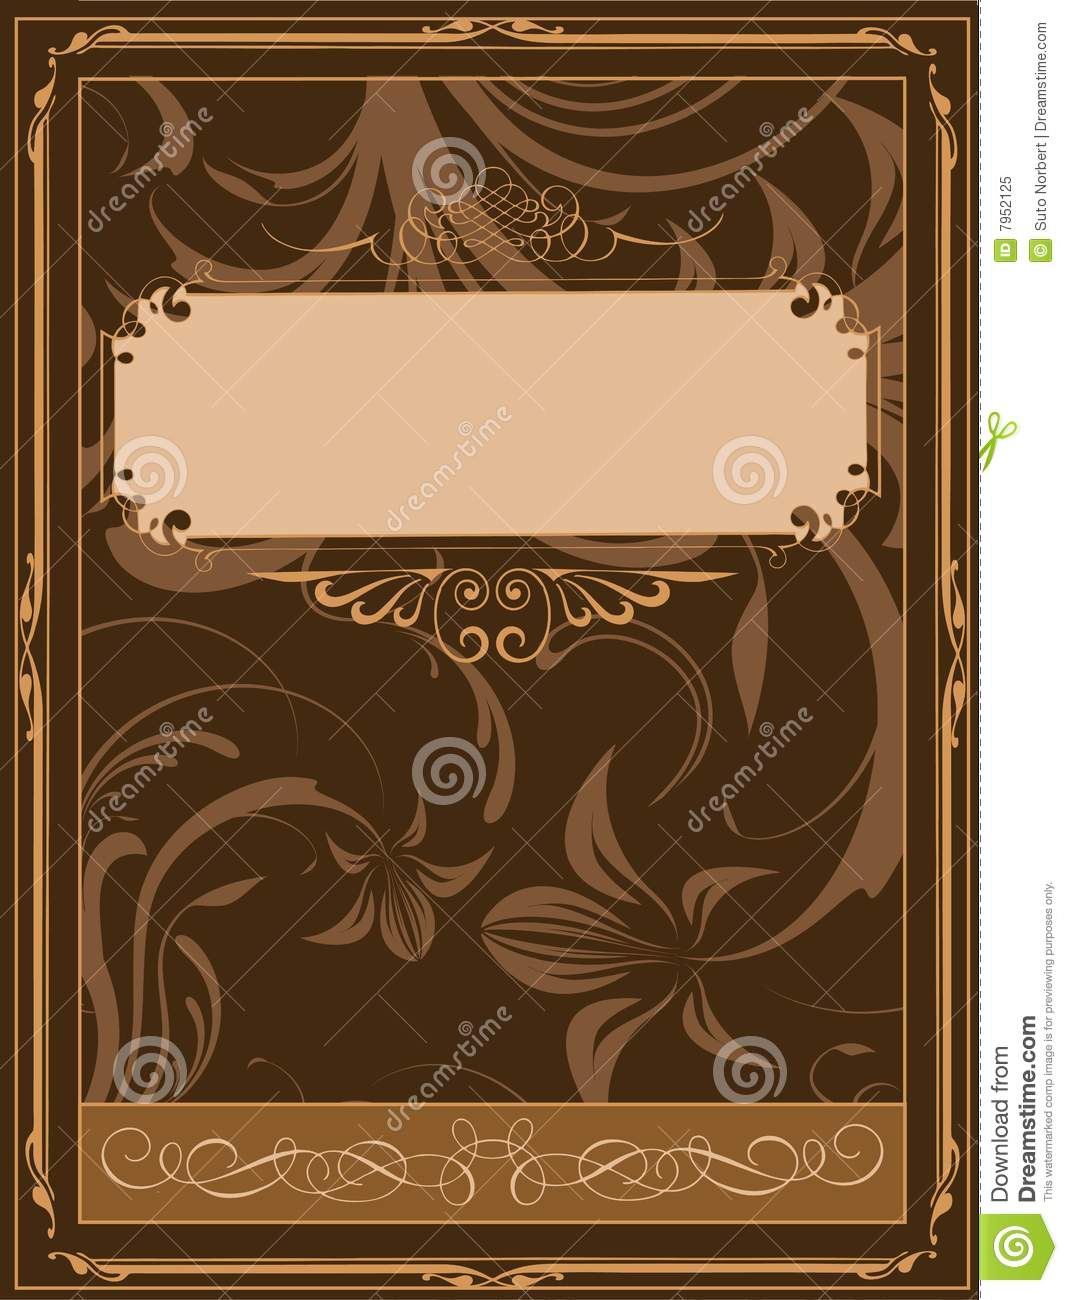 Old Fashioned Book Cover Design : Old book cover royalty free stock photo image